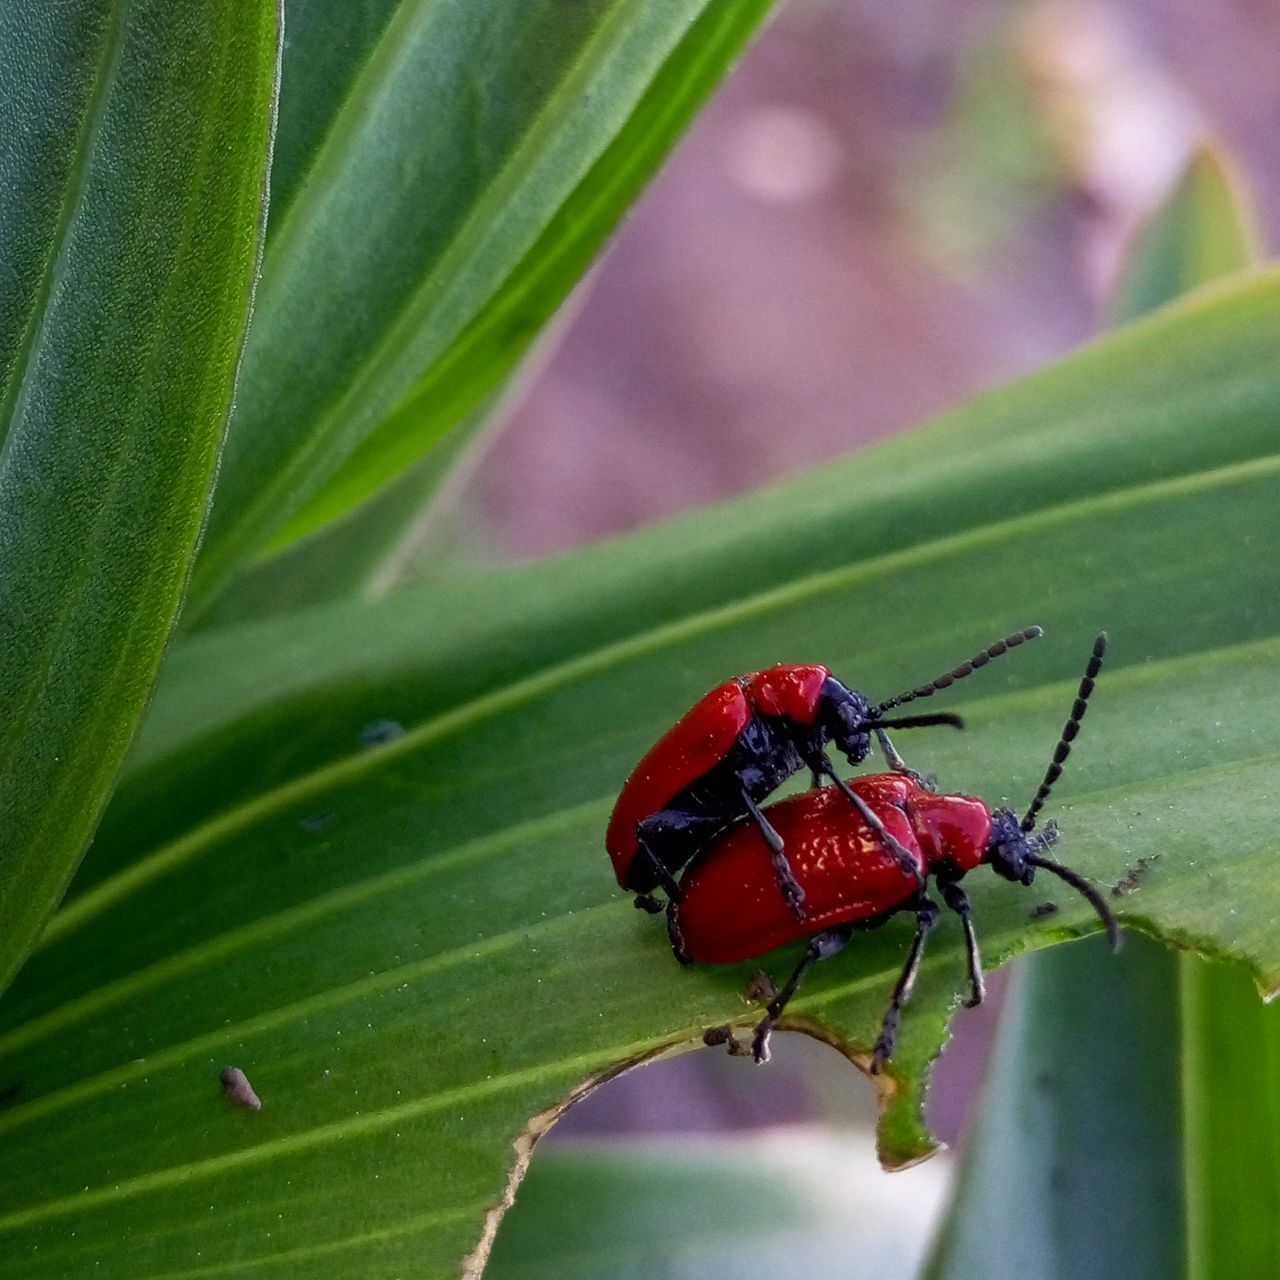 insect, animals in the wild, leaf, animal themes, one animal, green color, close-up, no people, animal wildlife, day, red, nature, focus on foreground, outdoors, ladybug, plant, tiny